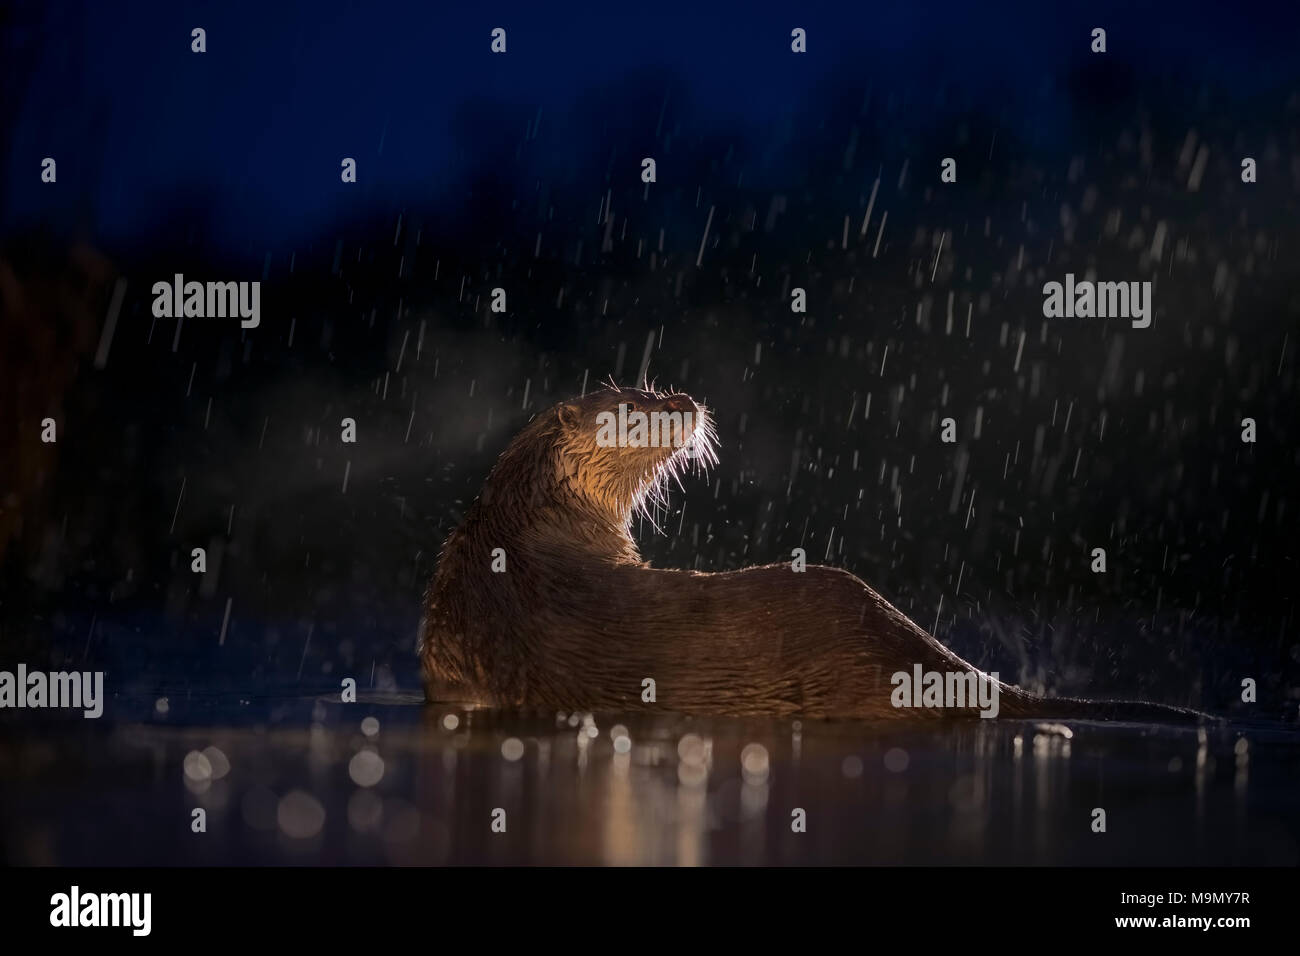 European otter (Lutra lutra) on nocturnal hunting in the water during rain, search for food, National Park Kiskunság, Hungary - Stock Image